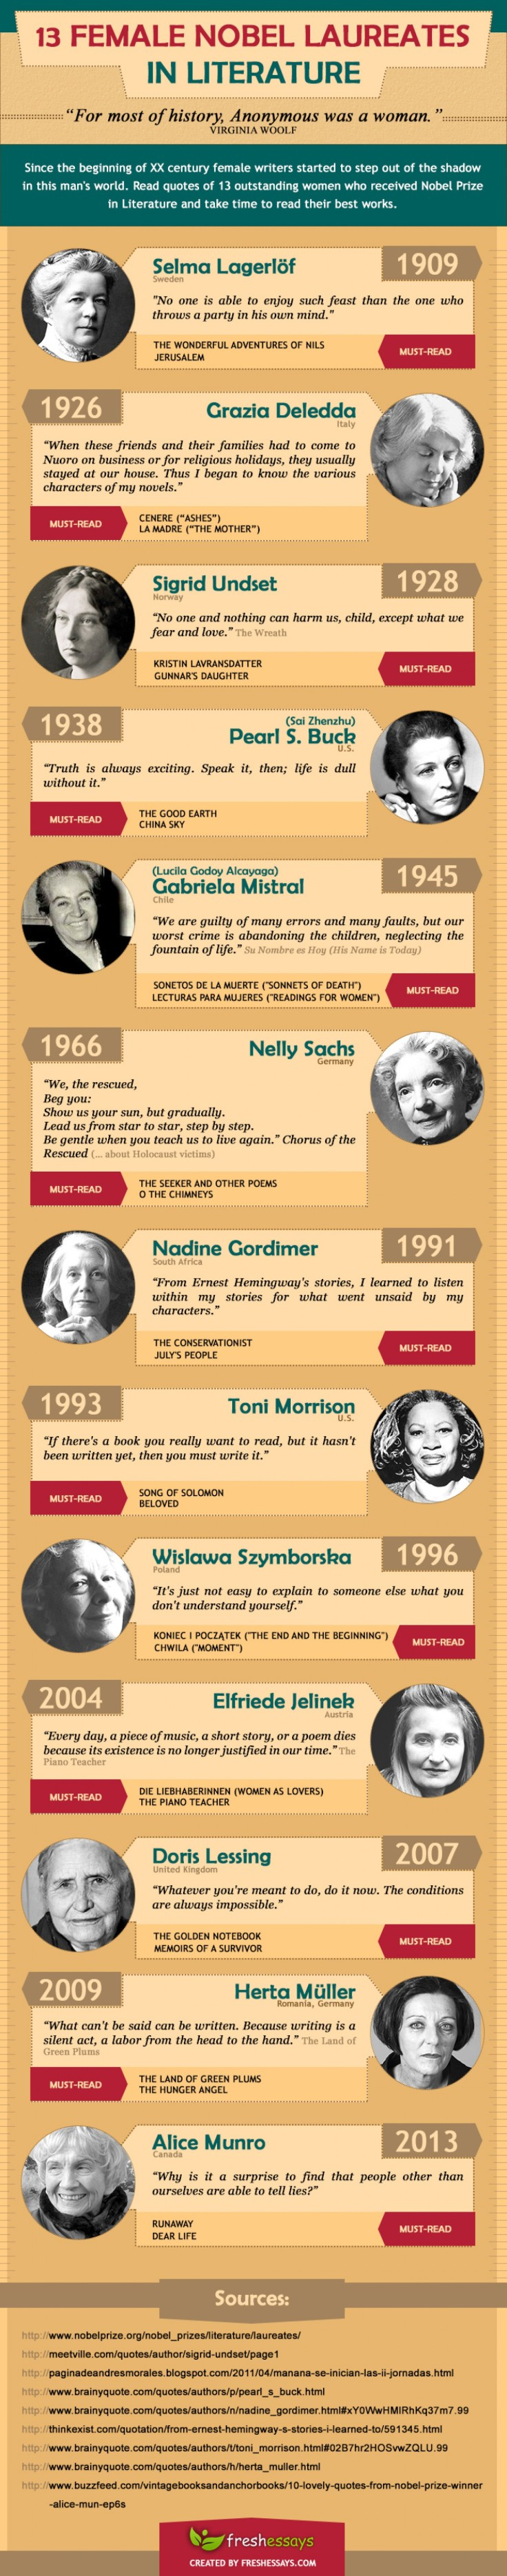 13-female-nobel-laureates-in-literature_54857e5330115_w1500.jpg